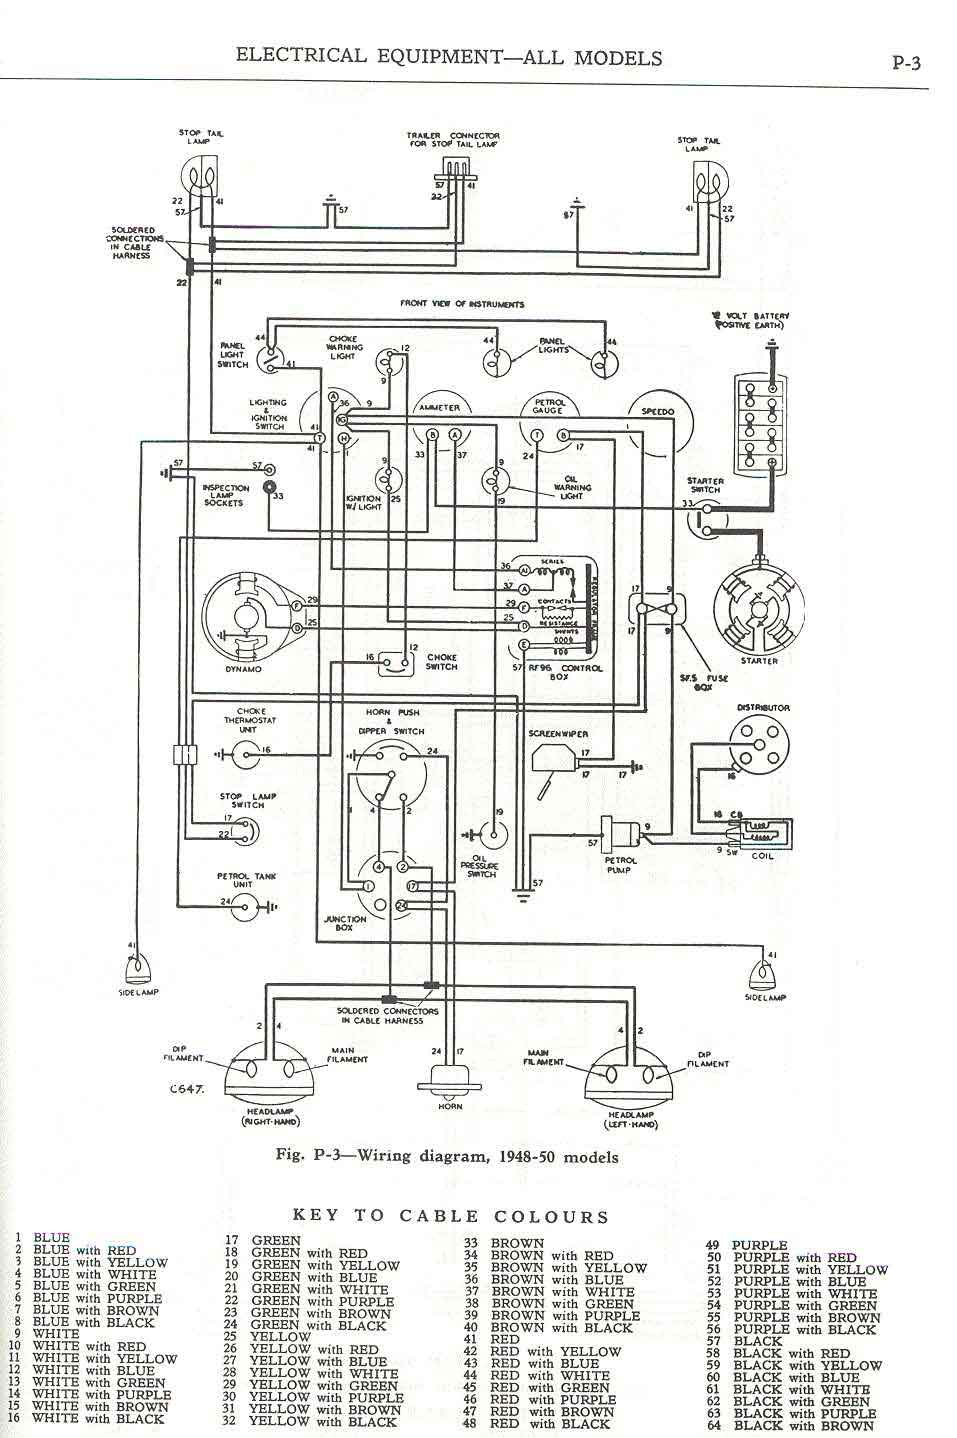 land rover faq repair maintenance series electrical wiring diagram 1948 50